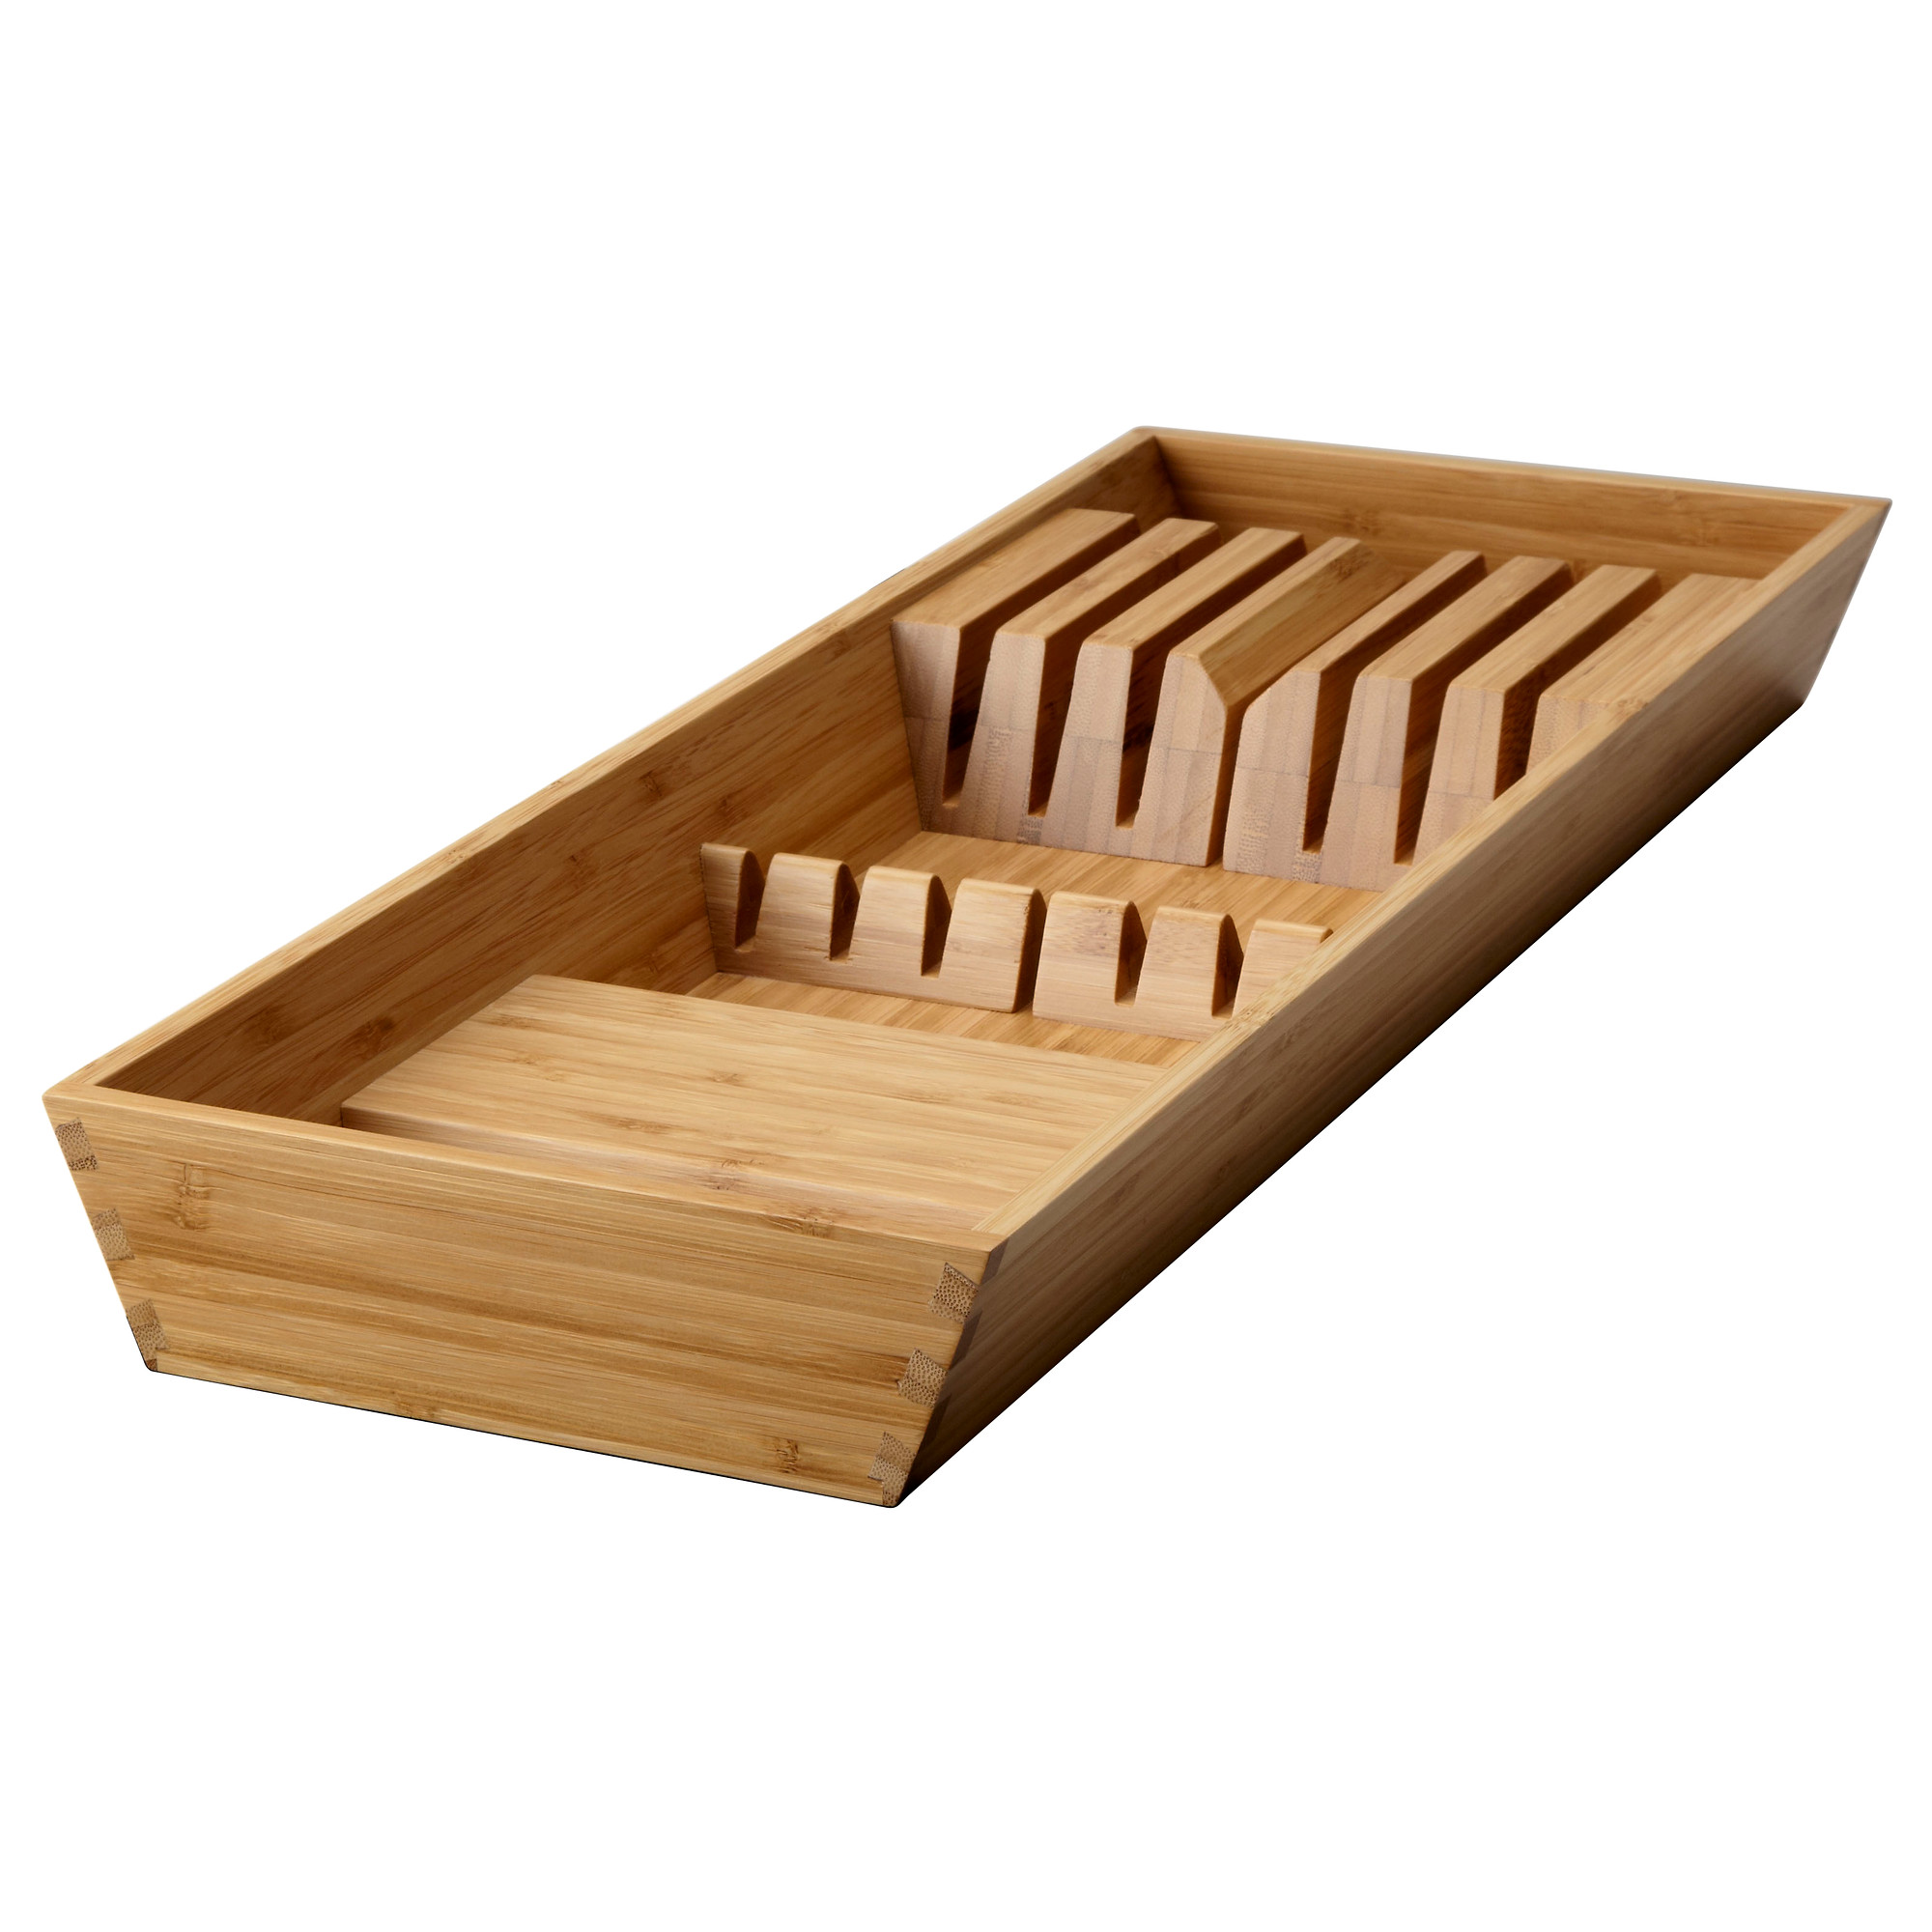 Kitchen cabinets 50cm depth - Variera Knife Tray Bamboo Width 20 Cm Depth 50 Cm Height 5 4